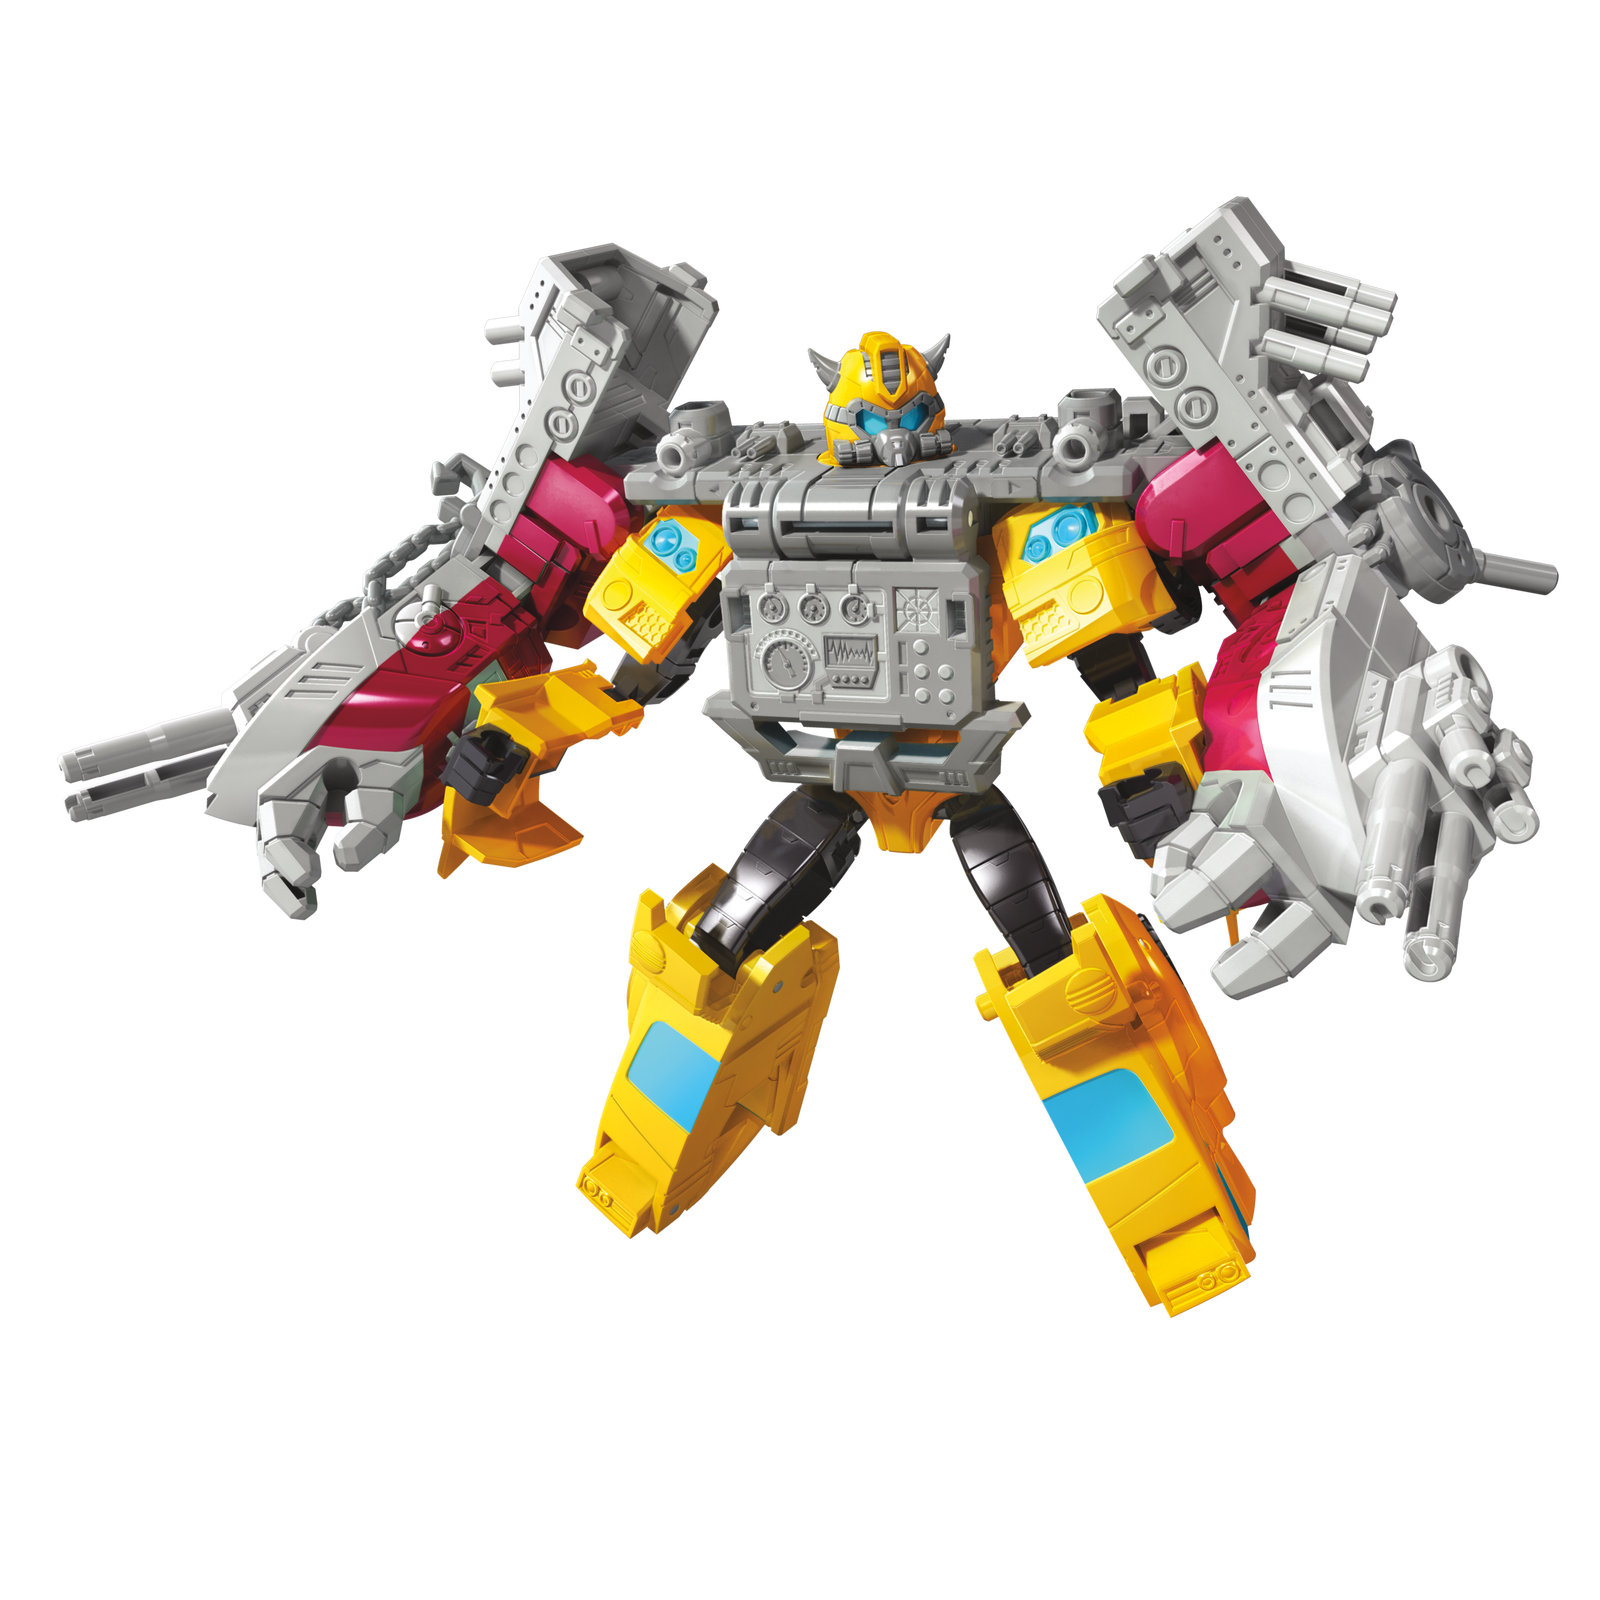 Transformers: Cyberverse Spark Armor Elite Class Bumblebee(Ages 6 and Up/ Approx. Retail Price: $24.99/ Available: 8/1/2019)